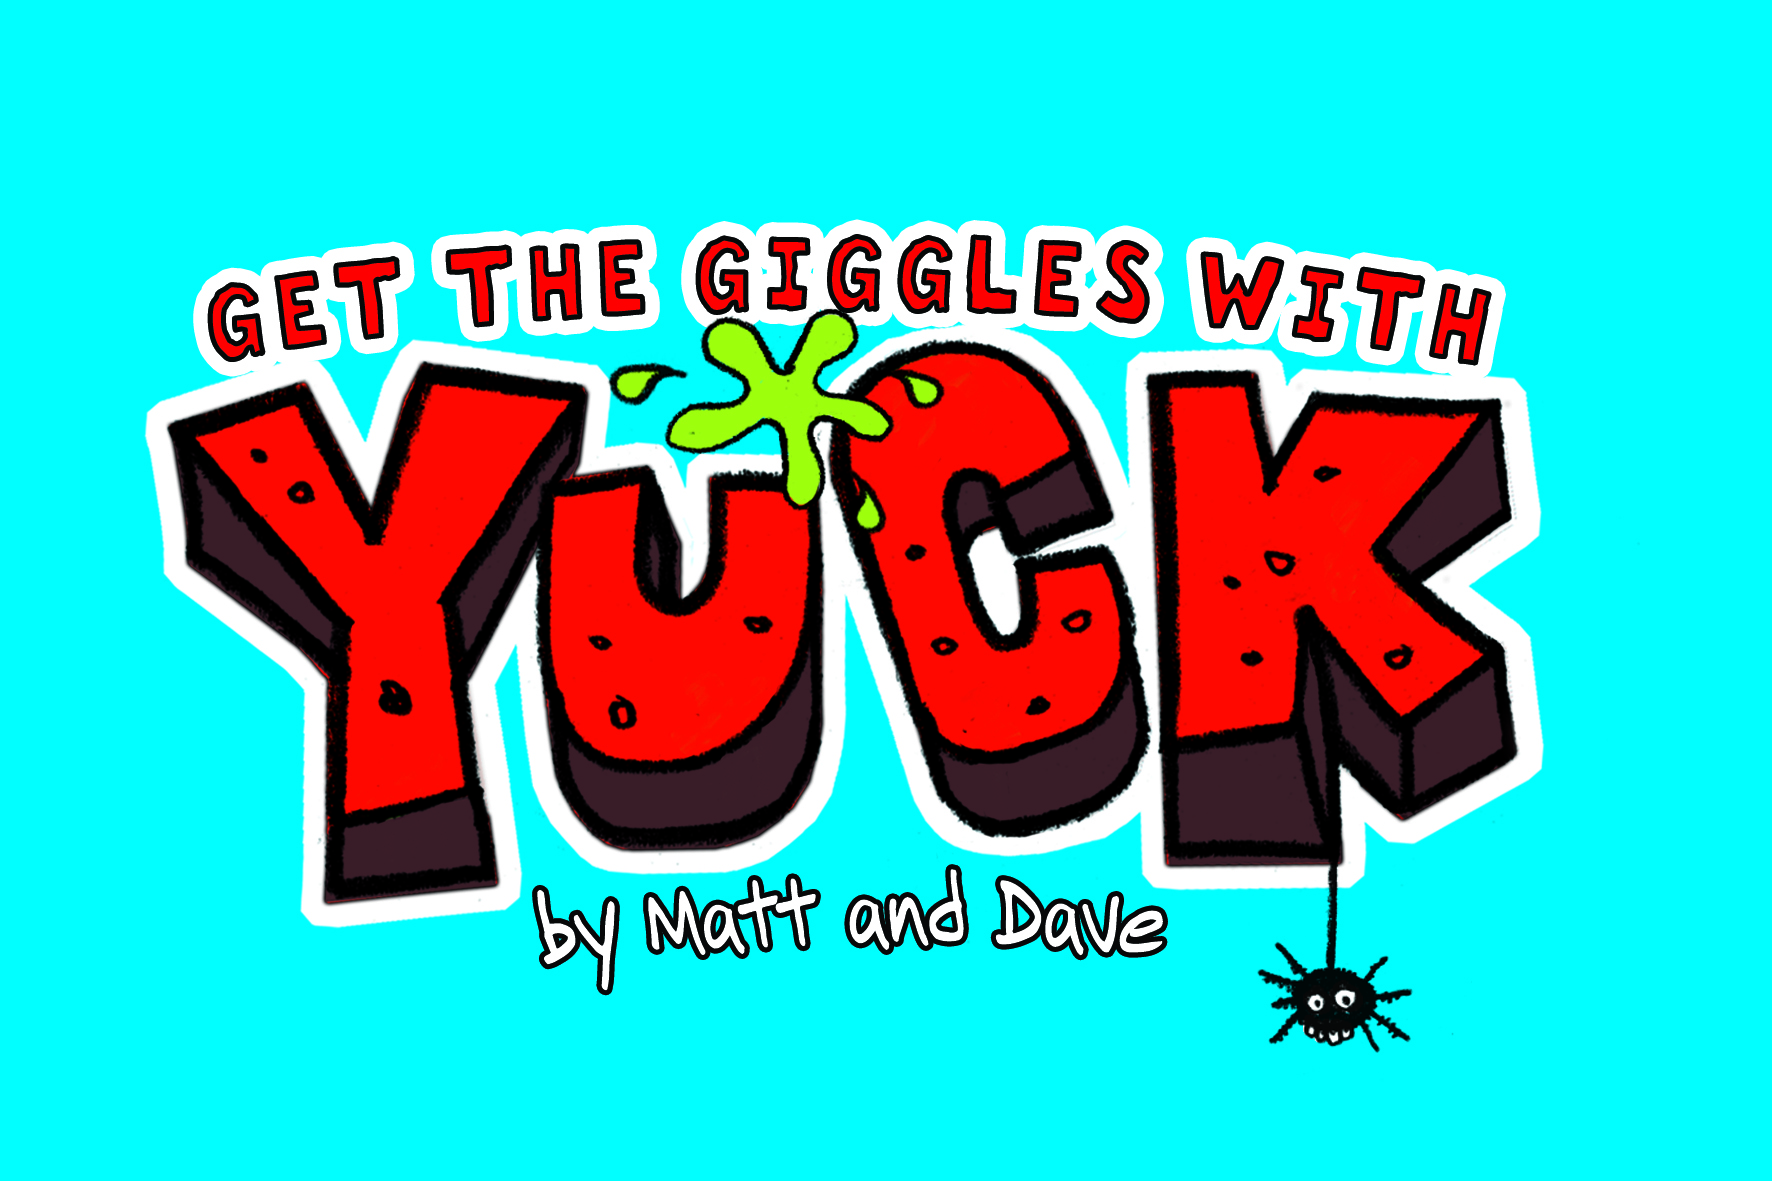 Yuck books by matt and dave and nigel baines from simon schuster uk activity sheets fandeluxe PDF